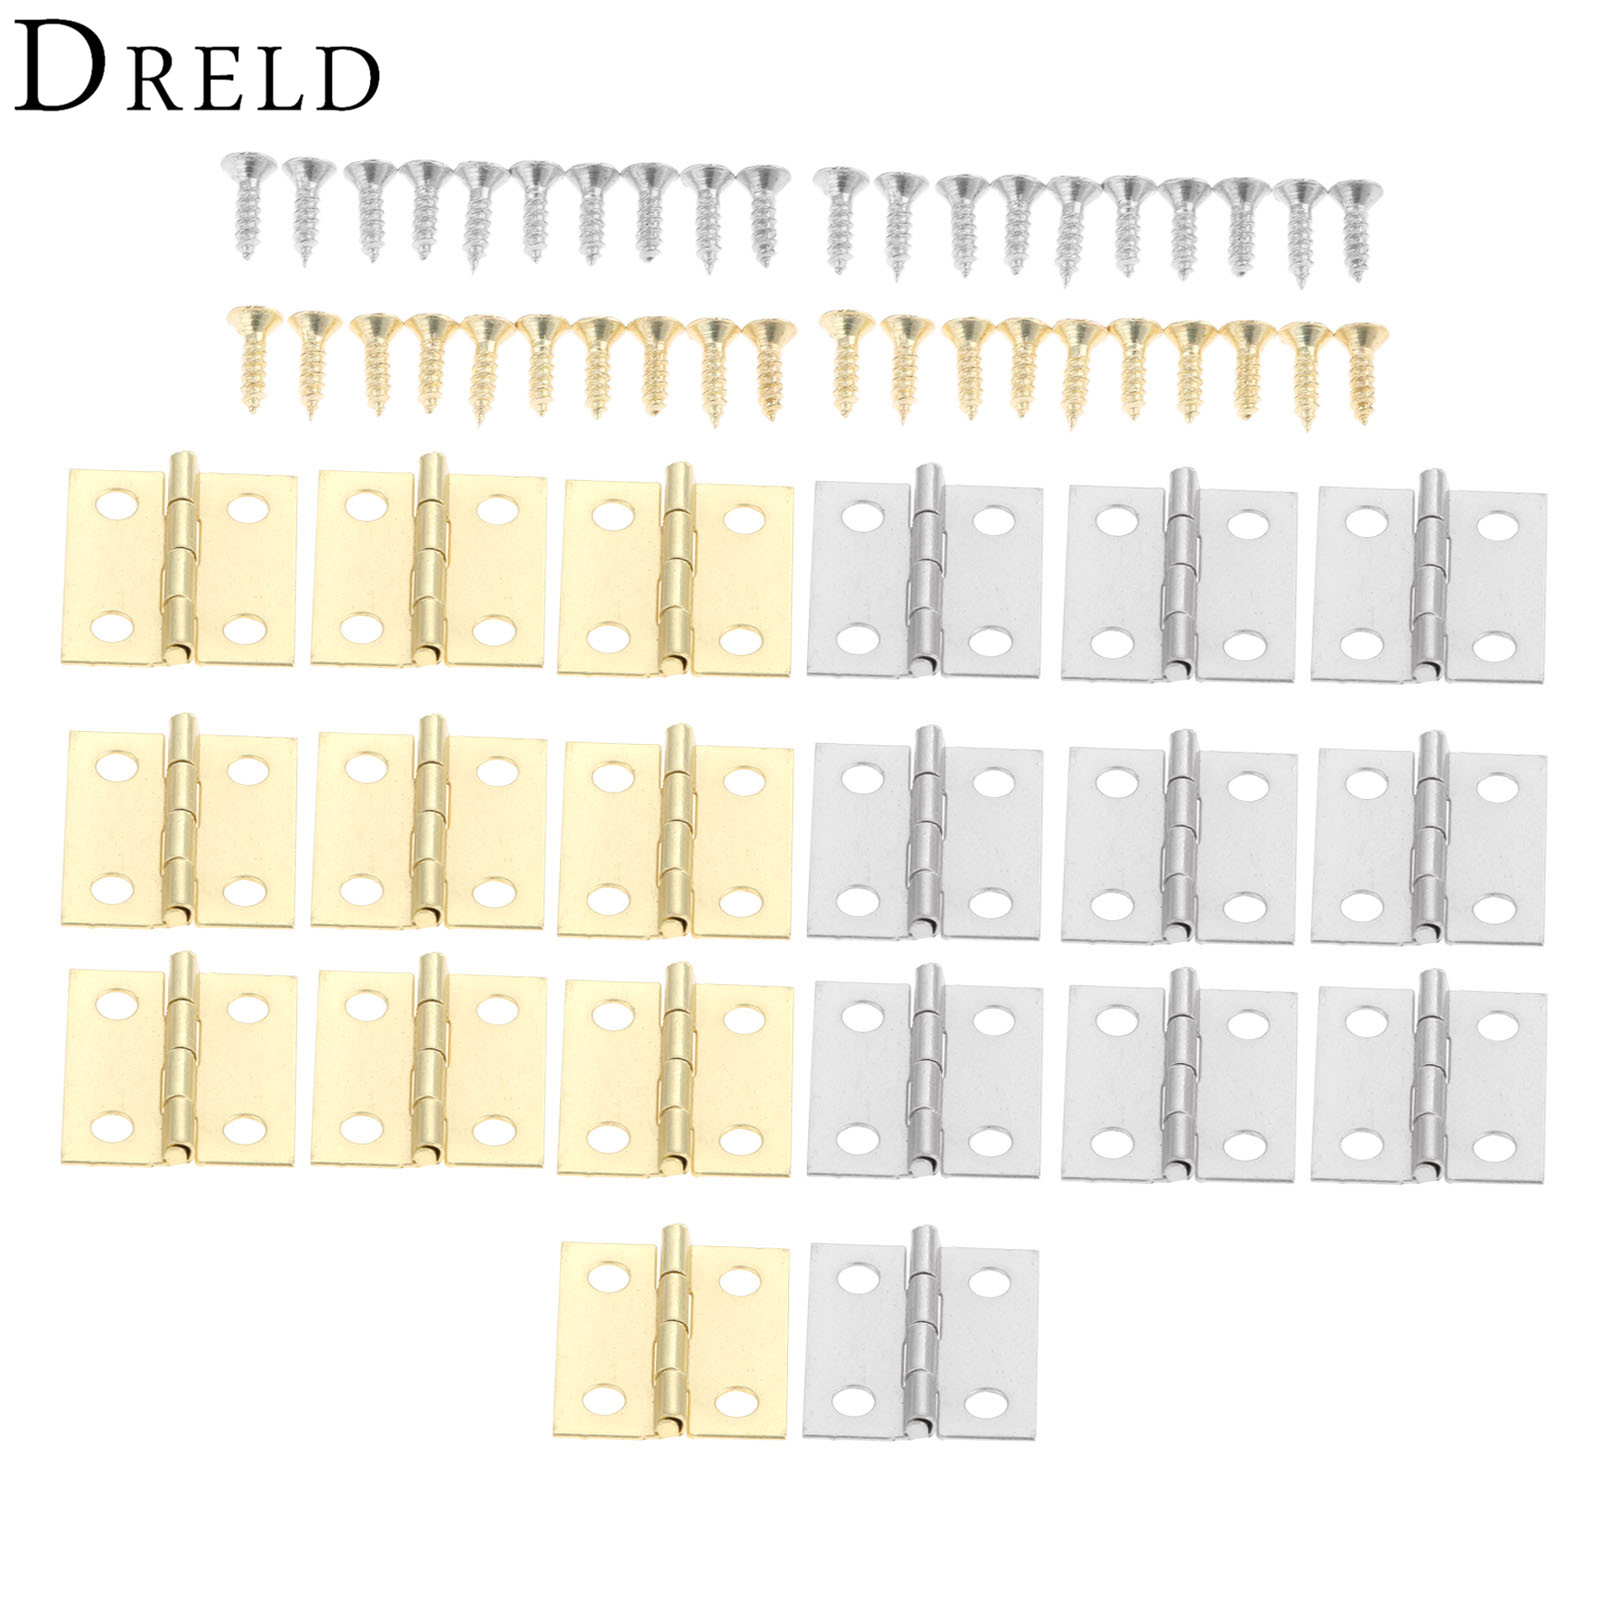 DRELD 20Pcs Silver/Gold Door Cabinet Mini Hinges Antique Jewelry Wood Boxes Luggage Hinges Furniture Decoration W/Screws 18*16mm